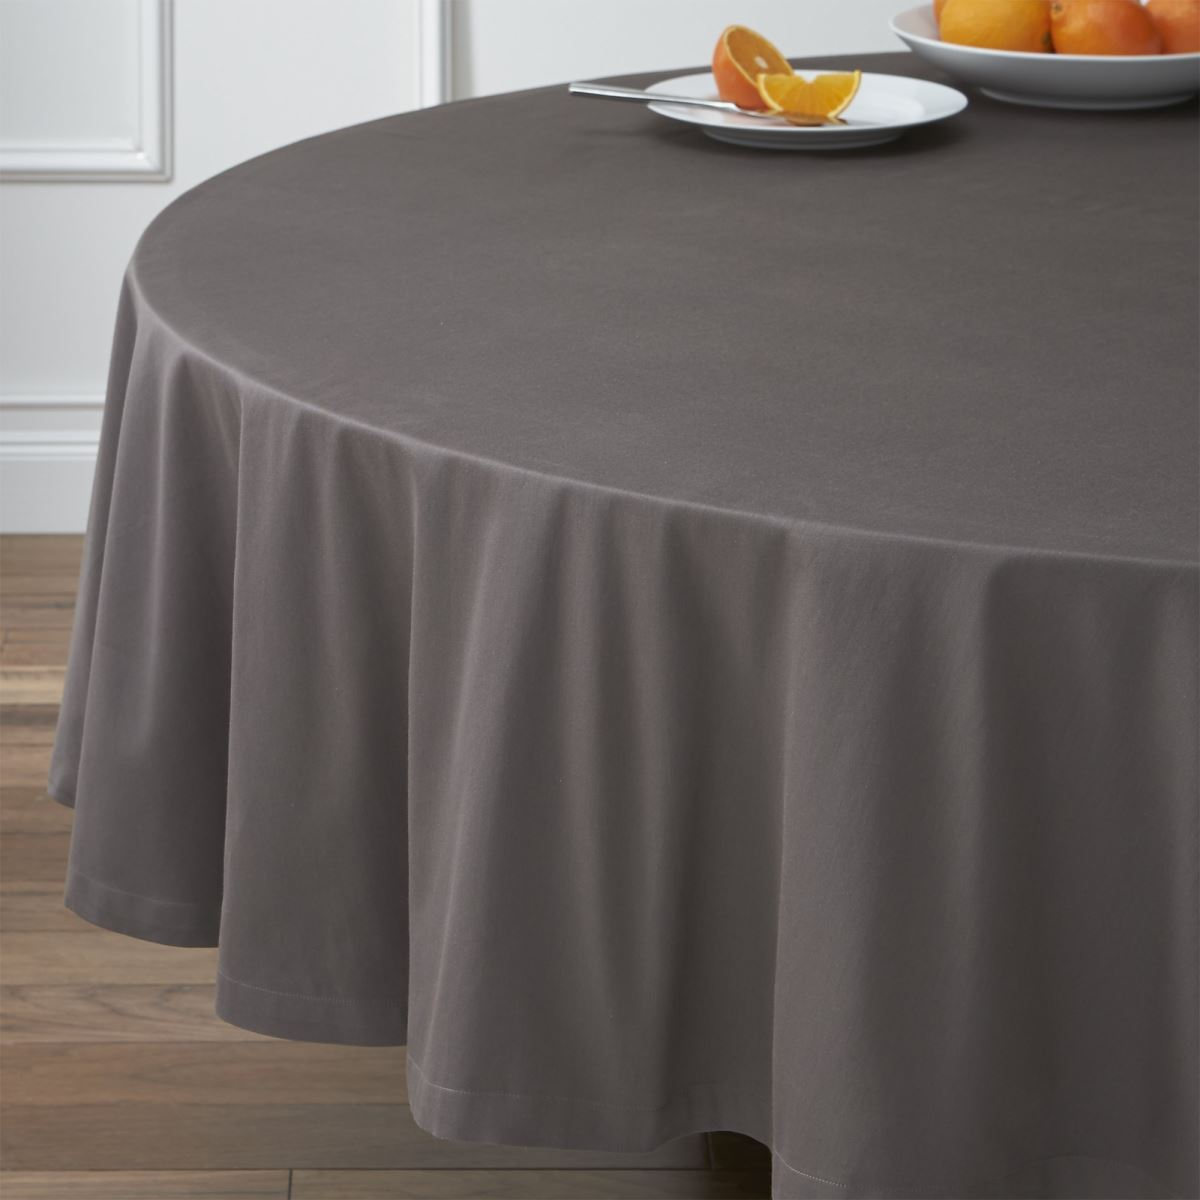 Grey round tablecloth from Crate & Barrel